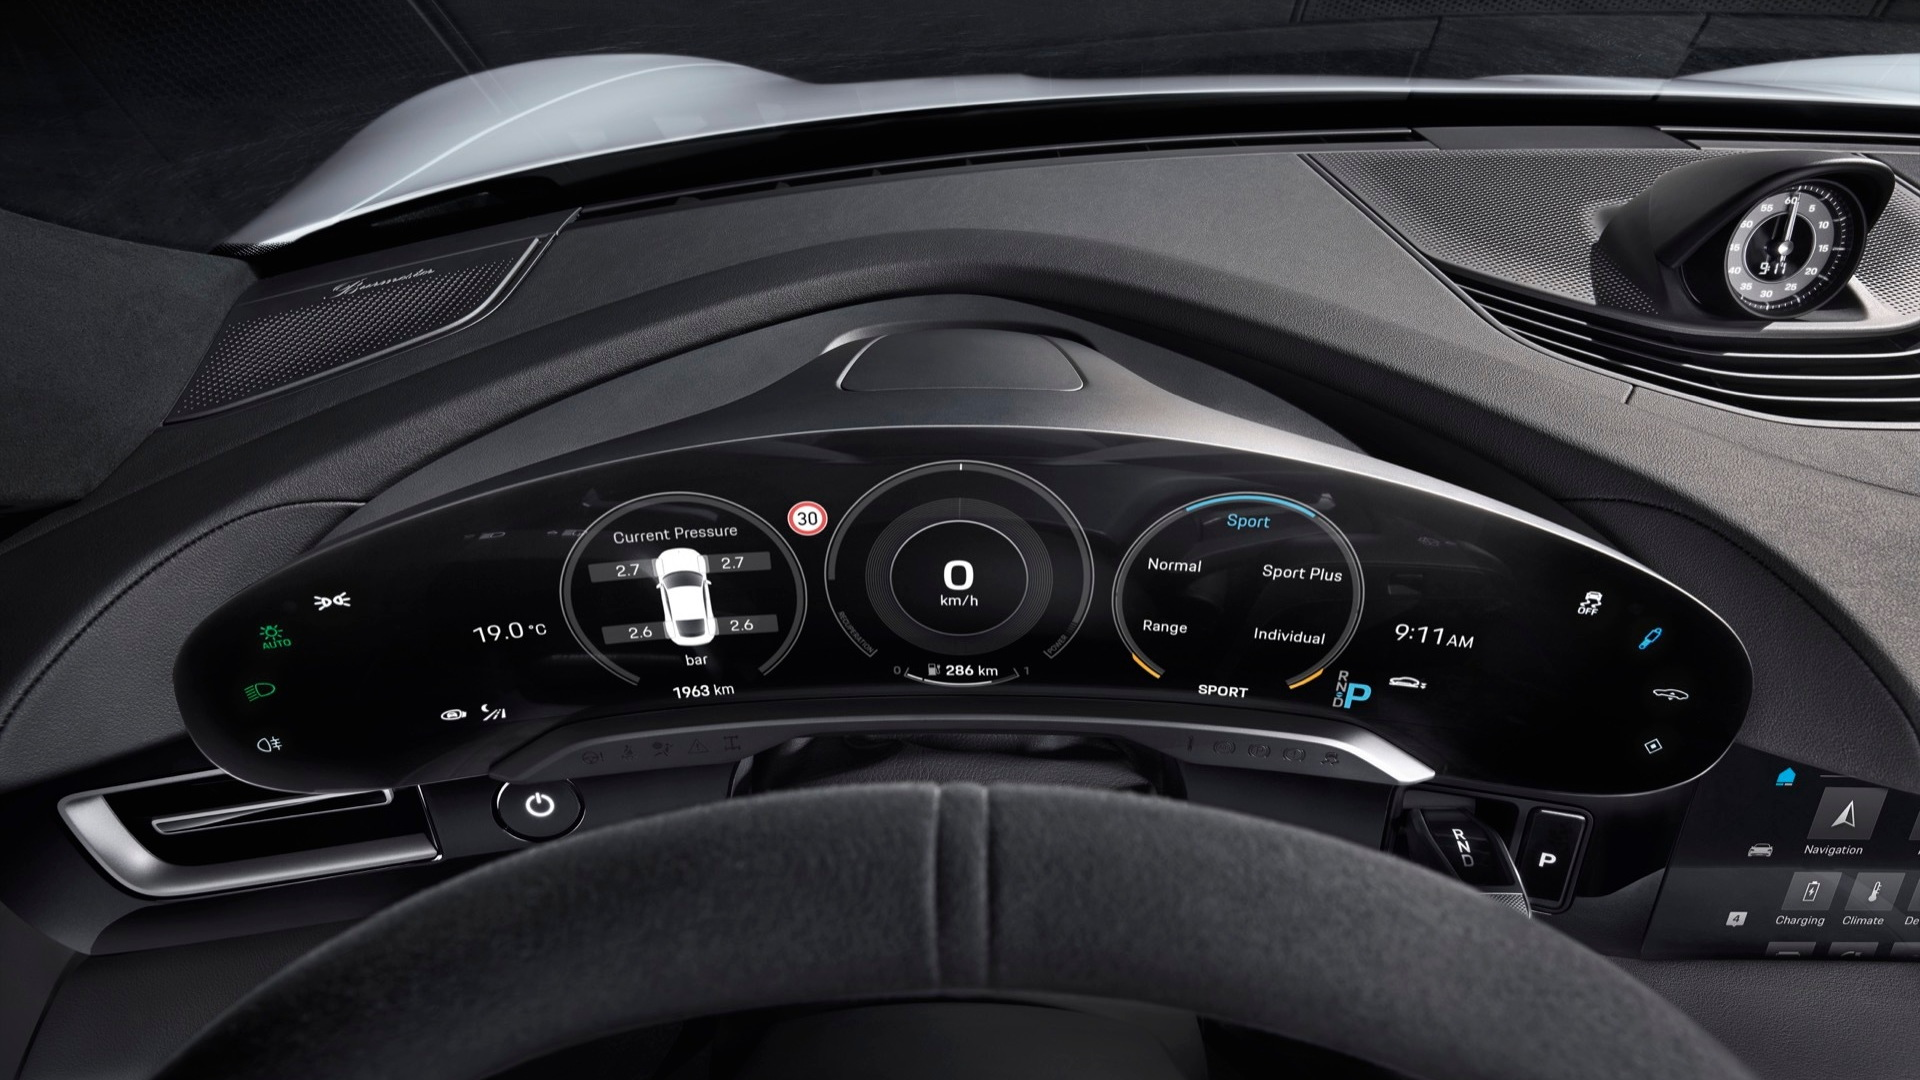 Porsche Taycan Electric Car Interior Revealed Five Screens But Driver Focused